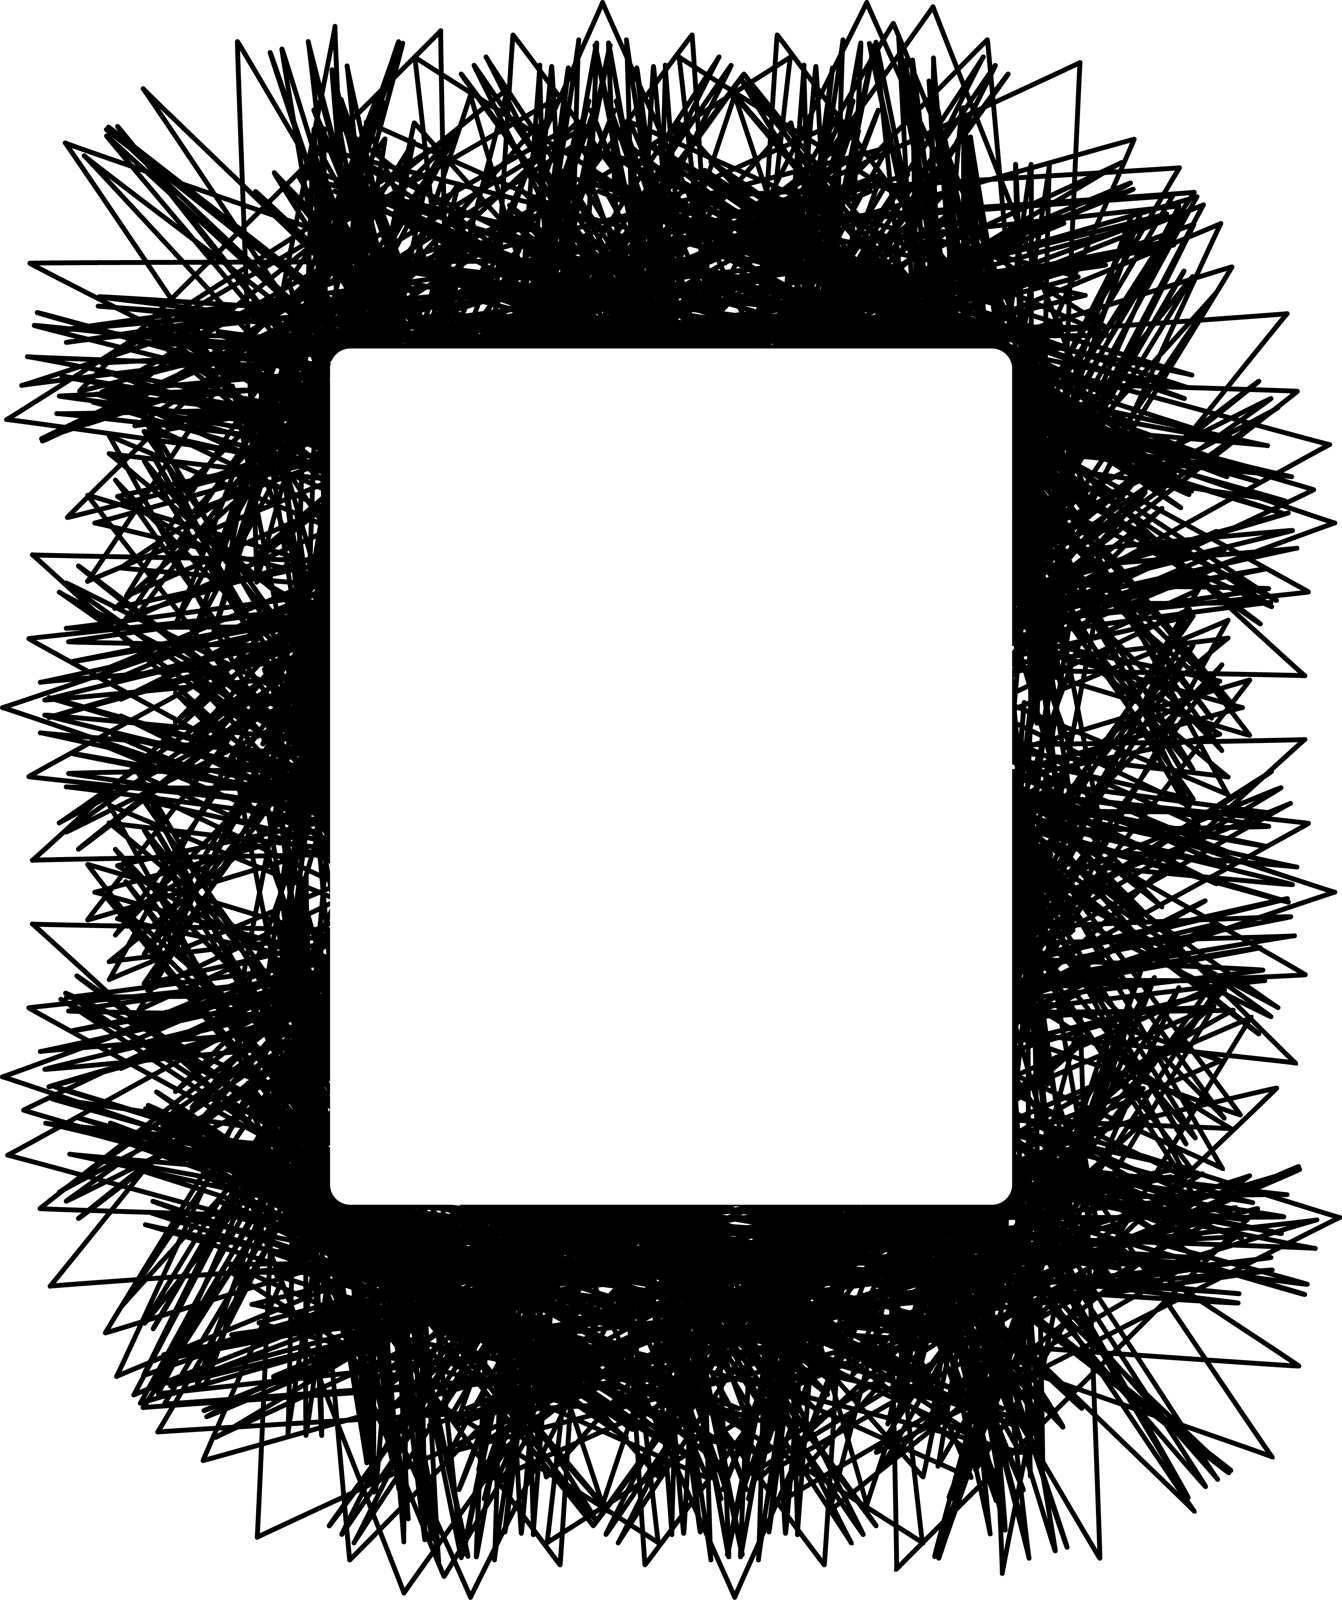 Scribble Drawing Uk : Free stock photo scribble frame freeimageslive